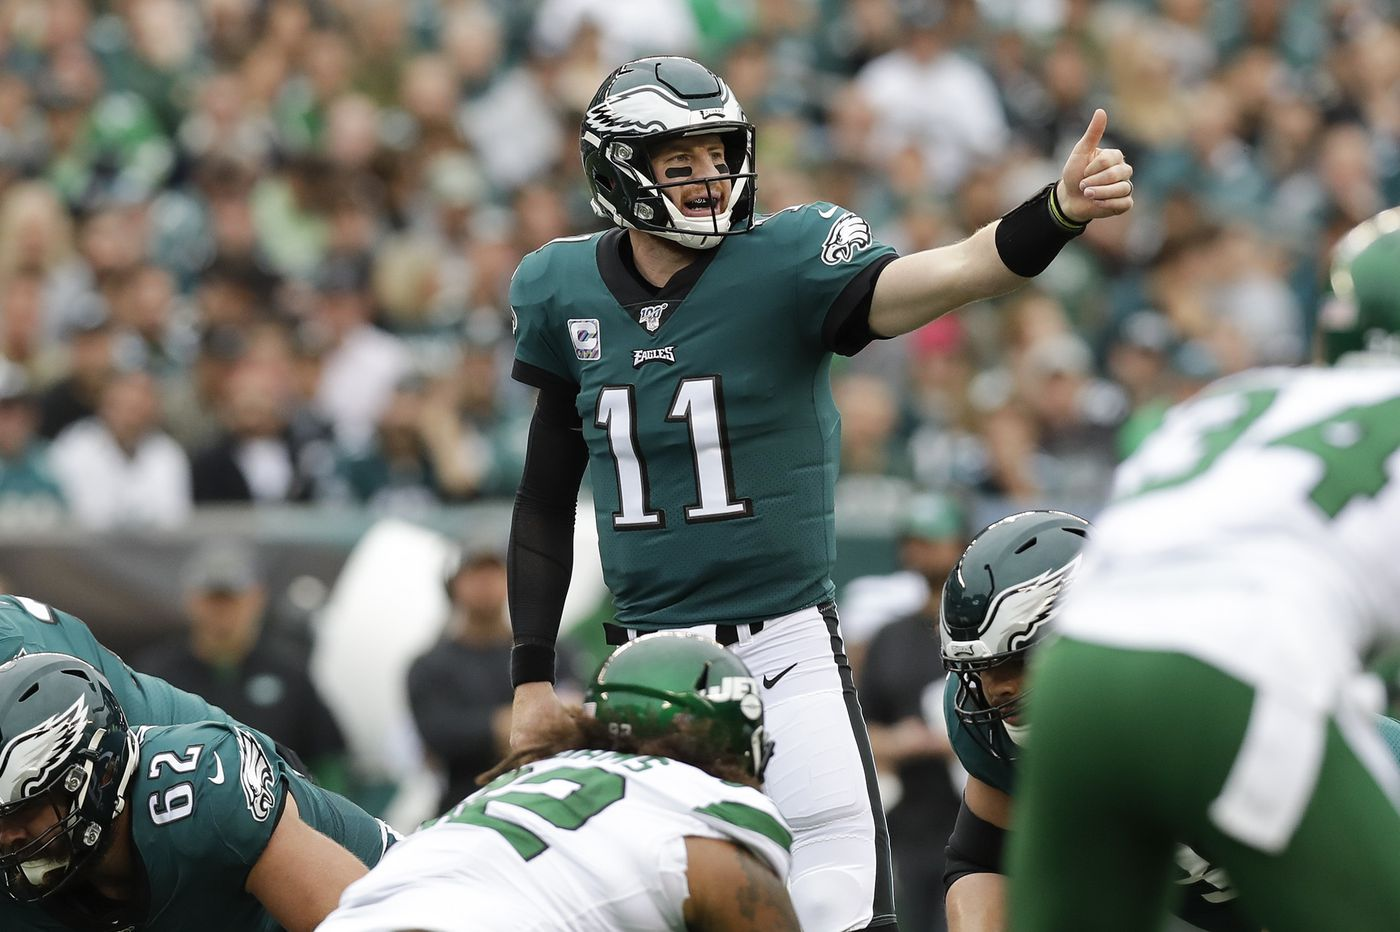 Is a steady, mature Carson Wentz what the Eagles need right now? | Bob Ford